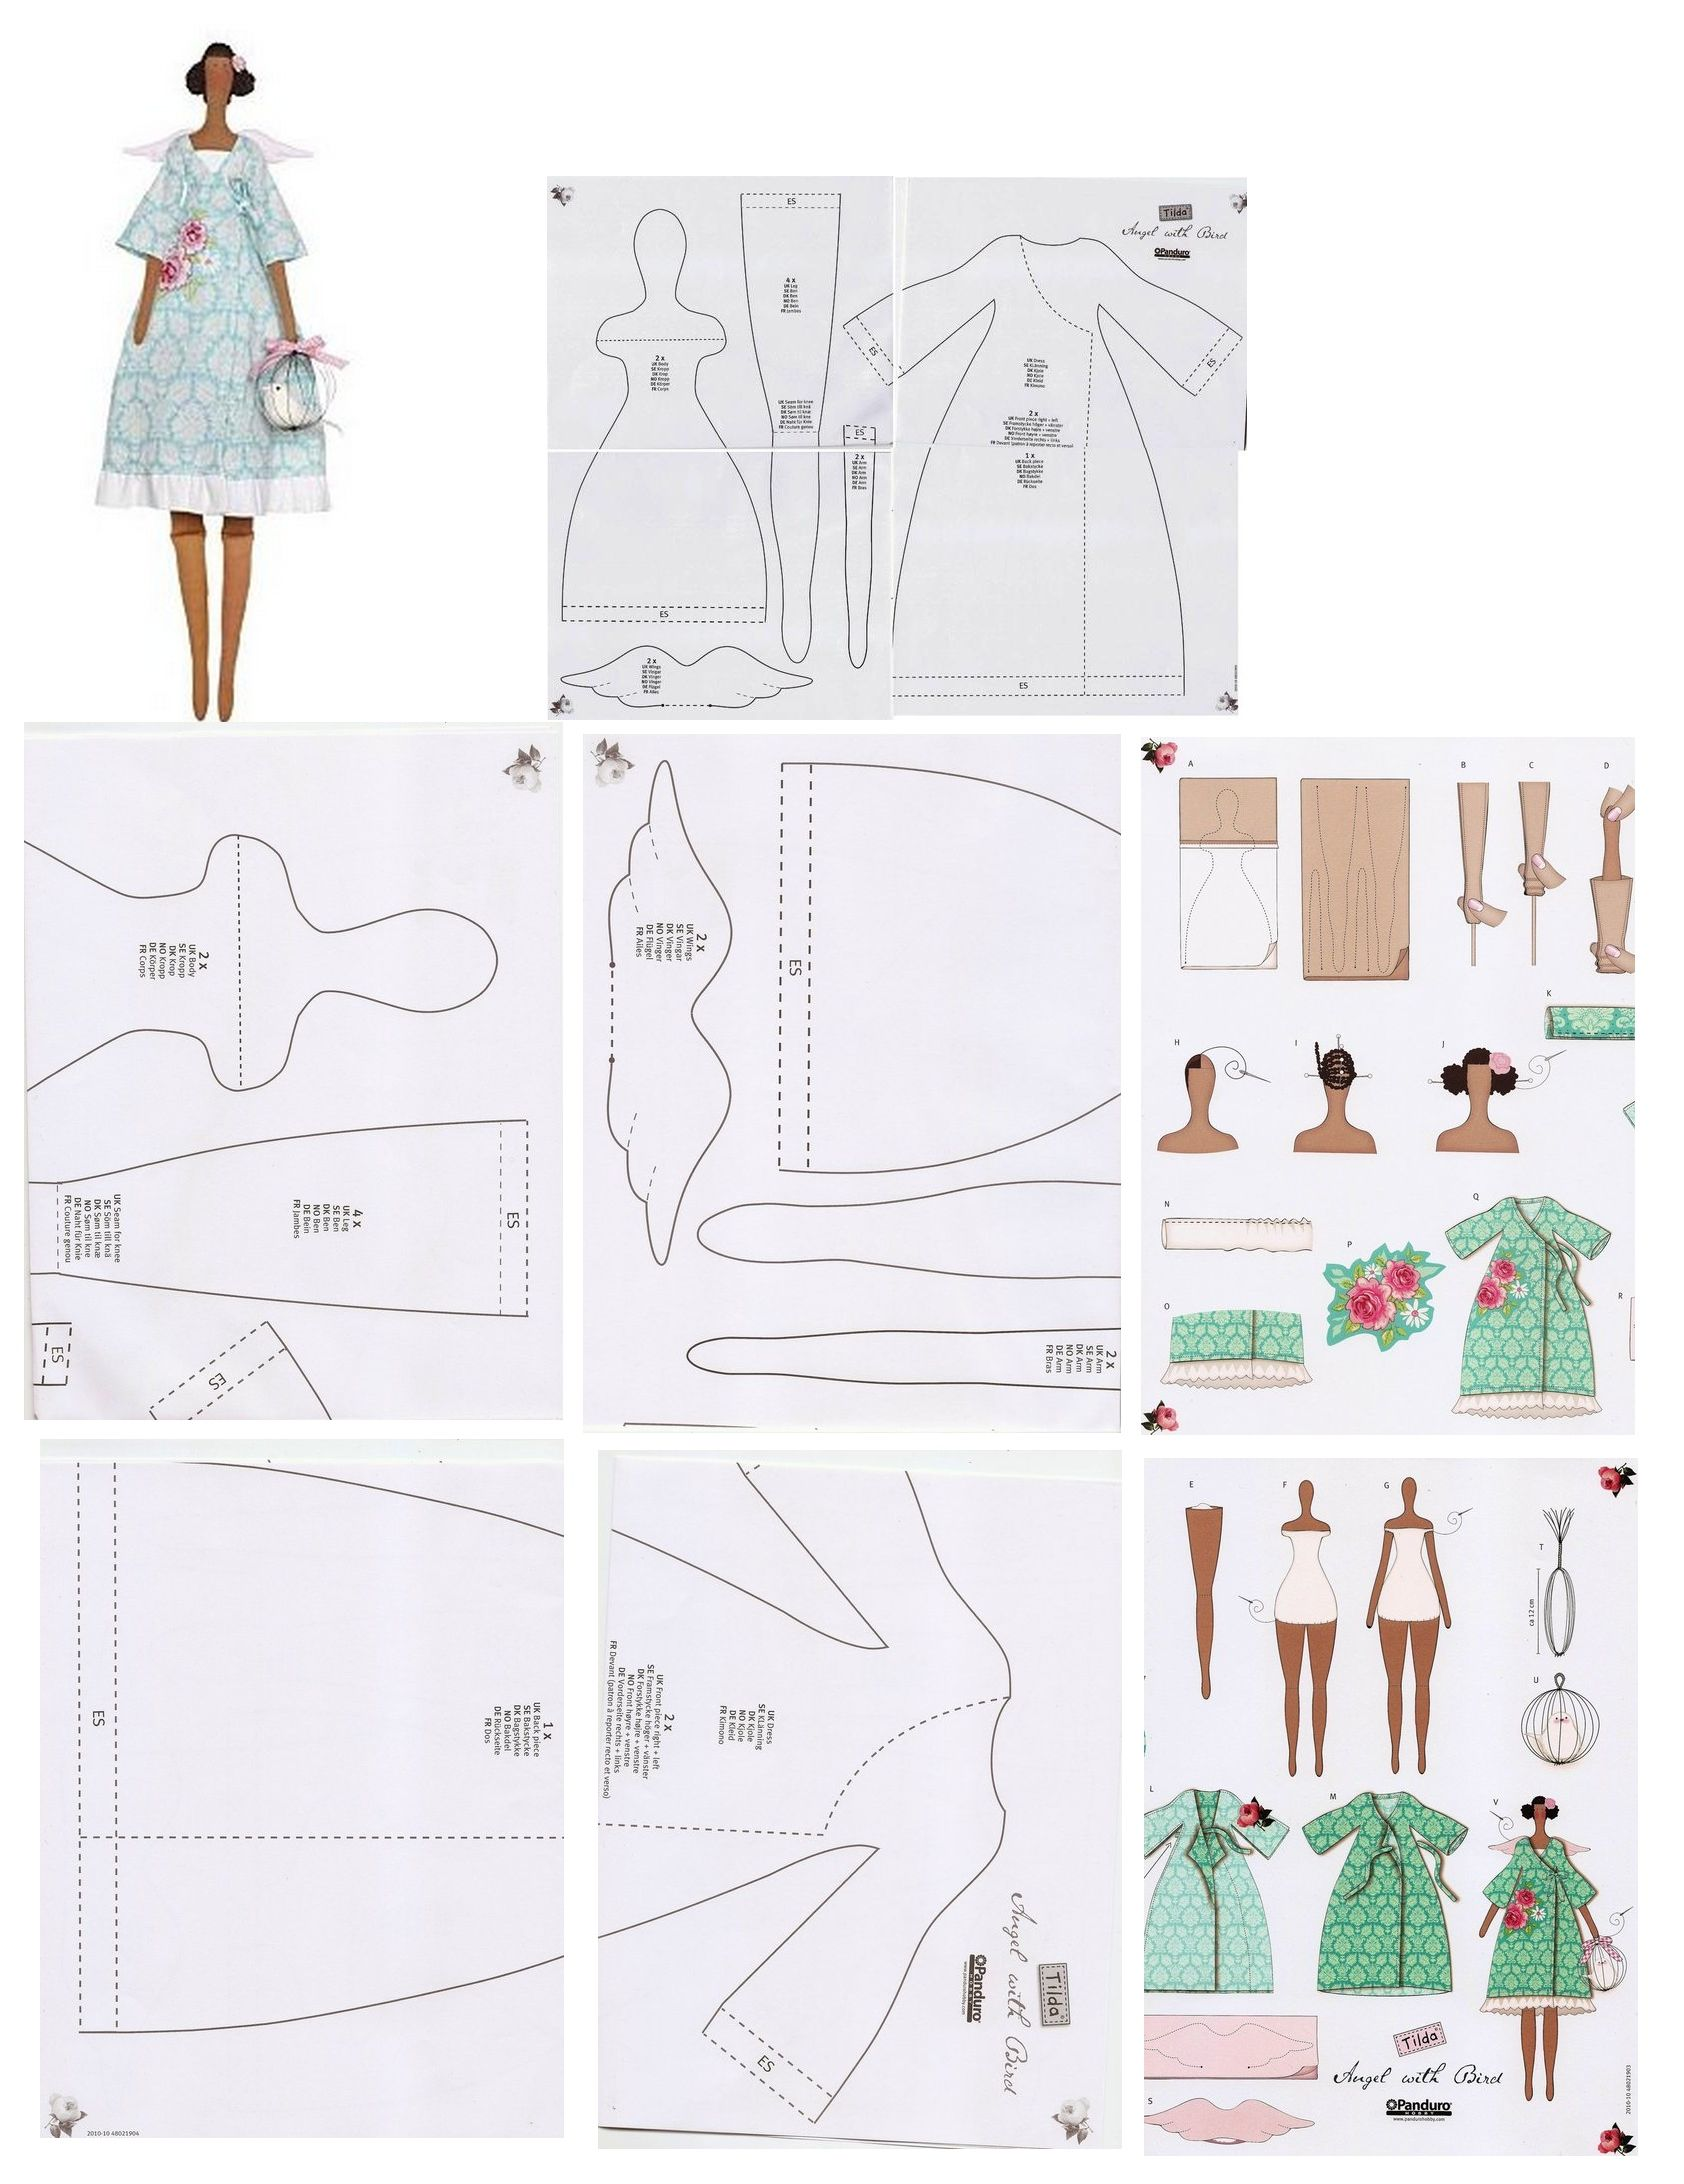 Pin by Nina Merle on dolls and toys | Pinterest | Dolls, Patterns ...